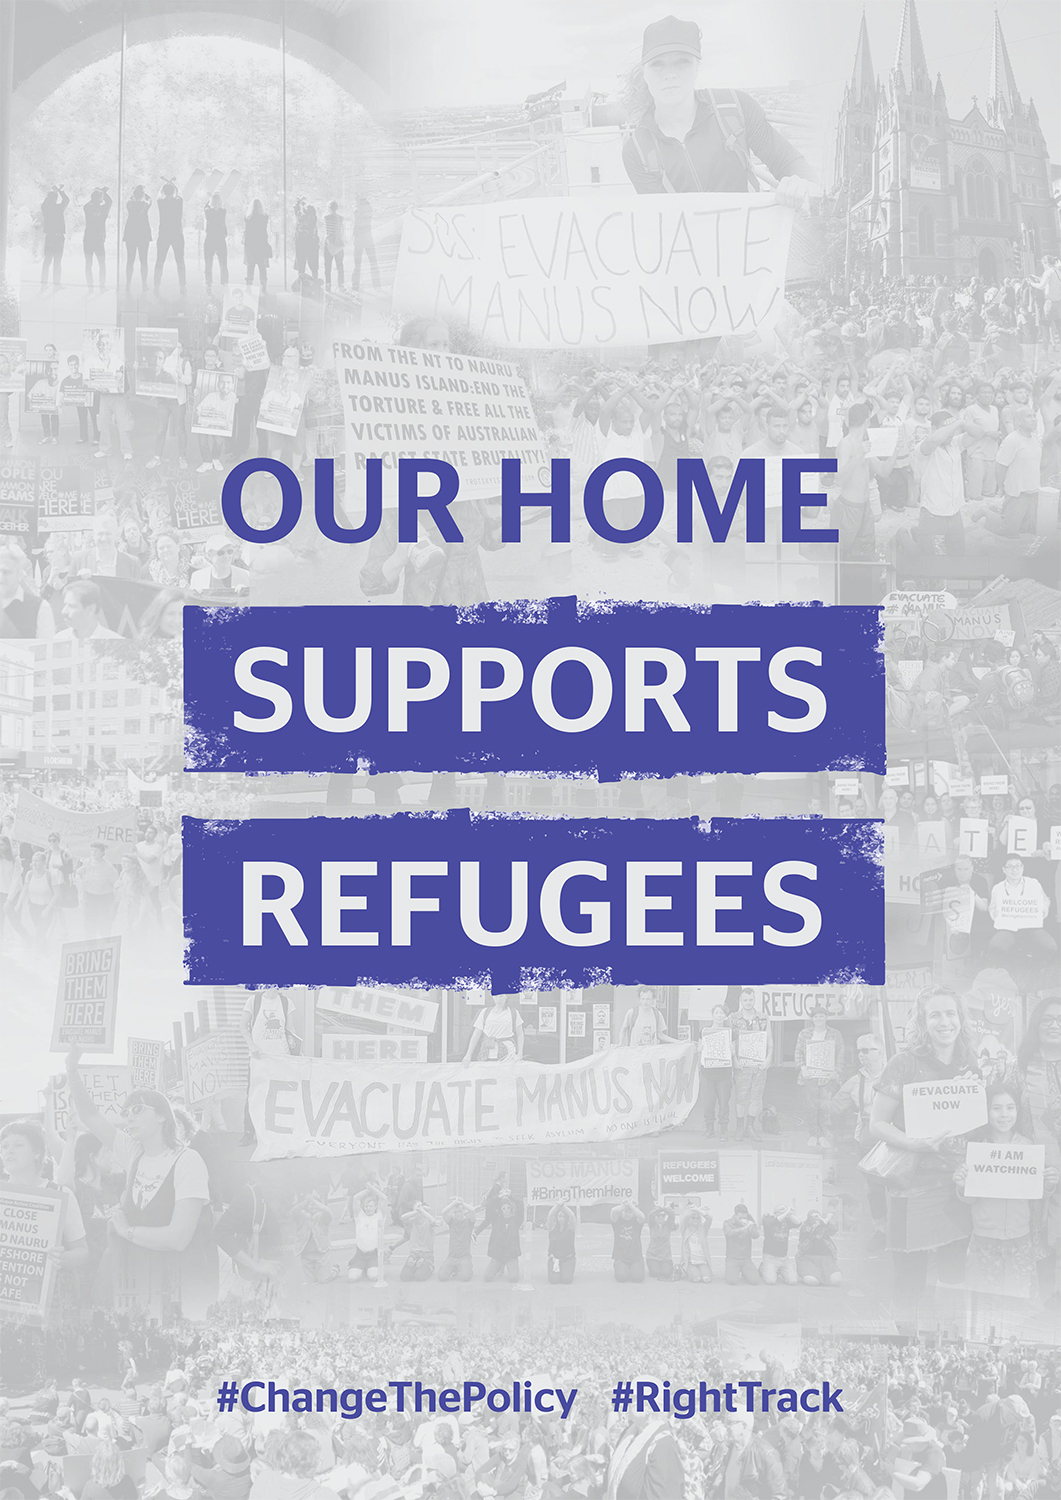 Our_Home_Supports_Refugees_-_Colour.jpg